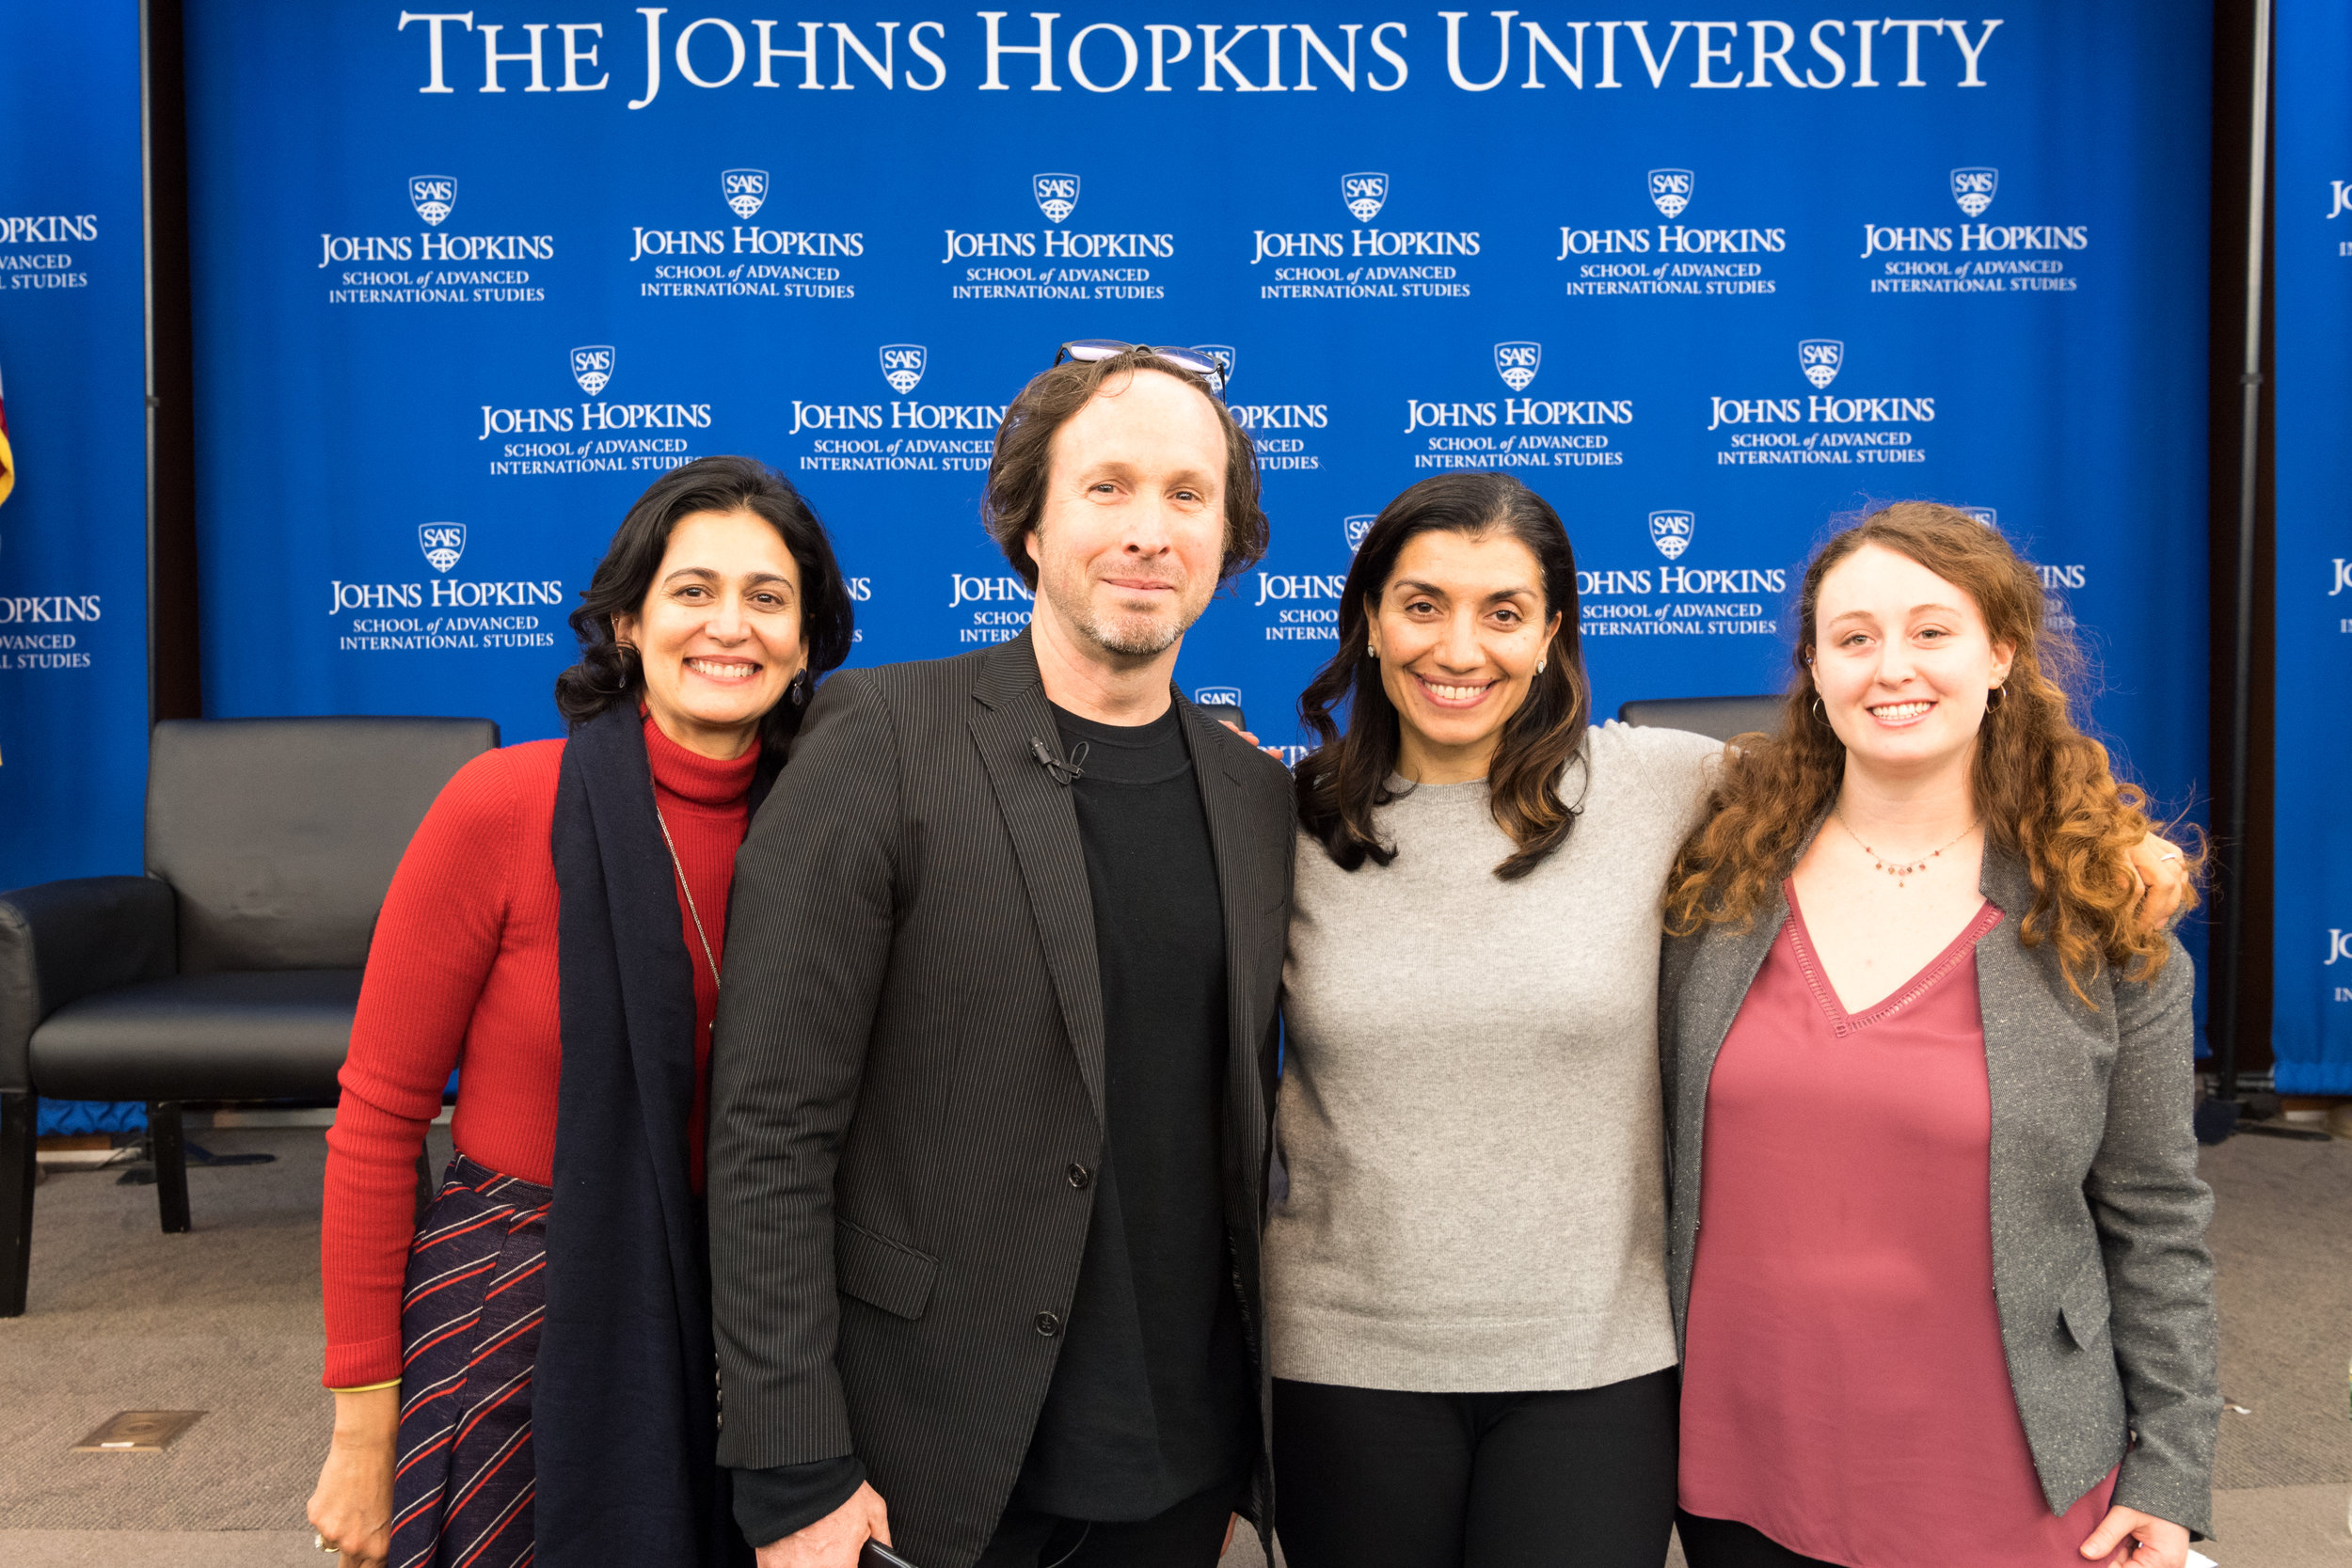 From left: Tanvi Nagpal, James Whitlow Delano, Shamila Chaudhary, and Maya Gainer